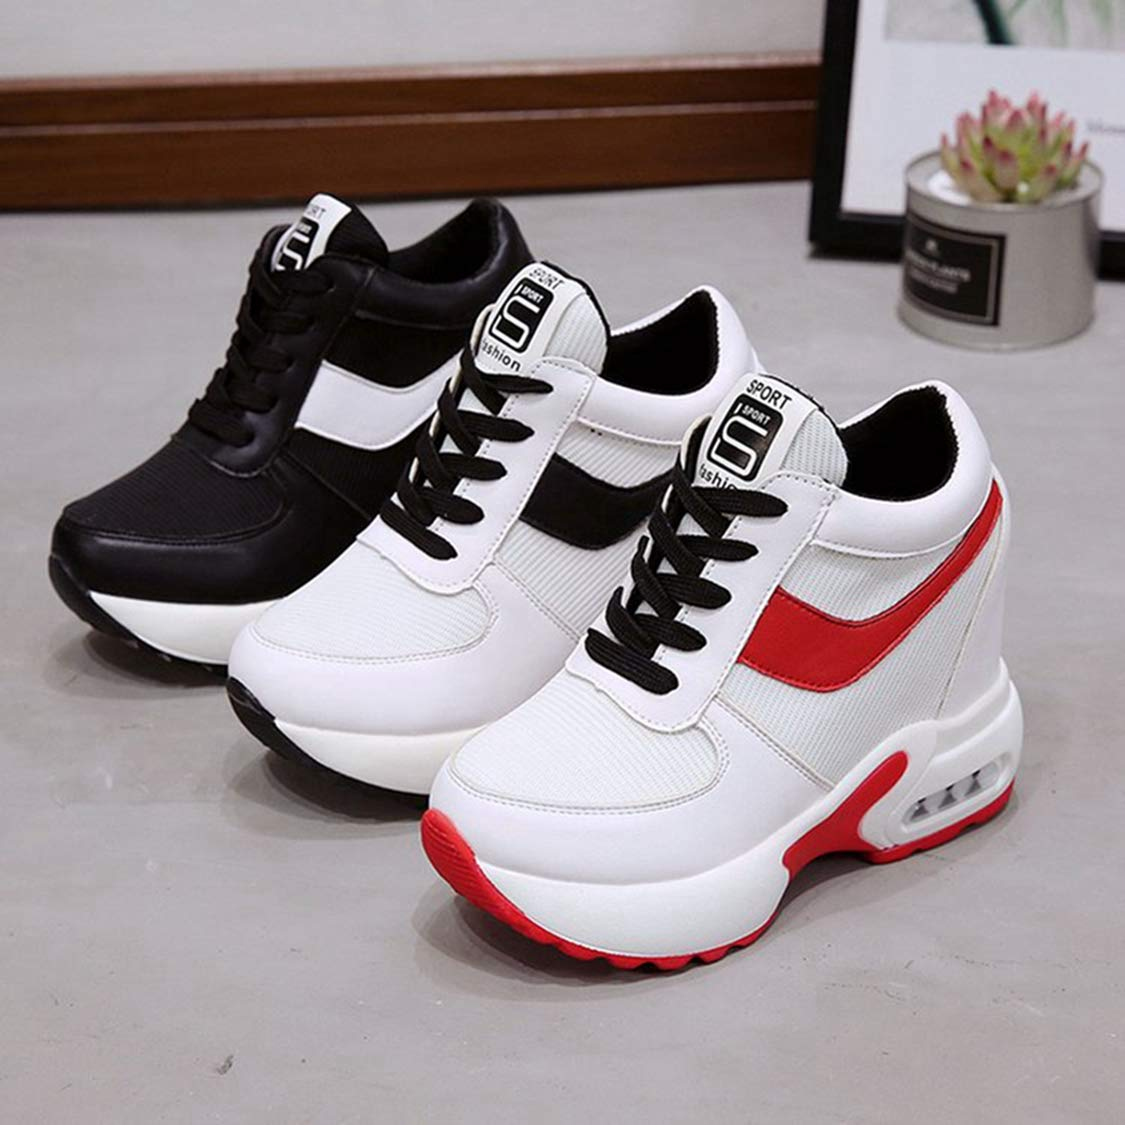 DOSOMI Women Sneakers Lace Up 10cm Height Increasing Flats Casual Fashion Wedges Shoes